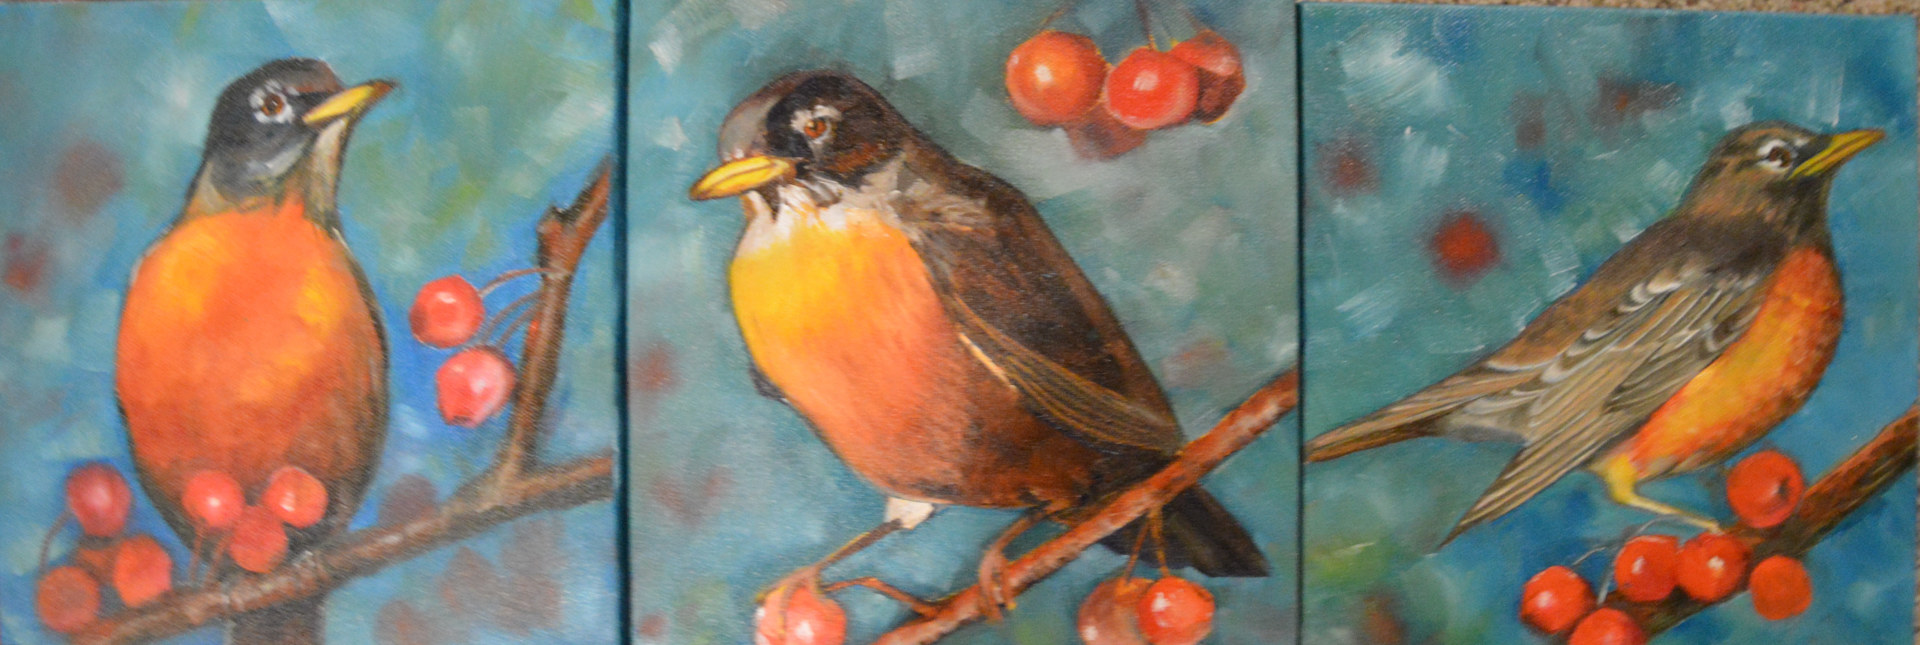 Oil painting Winter Robins I,II,III by Bev Robertson